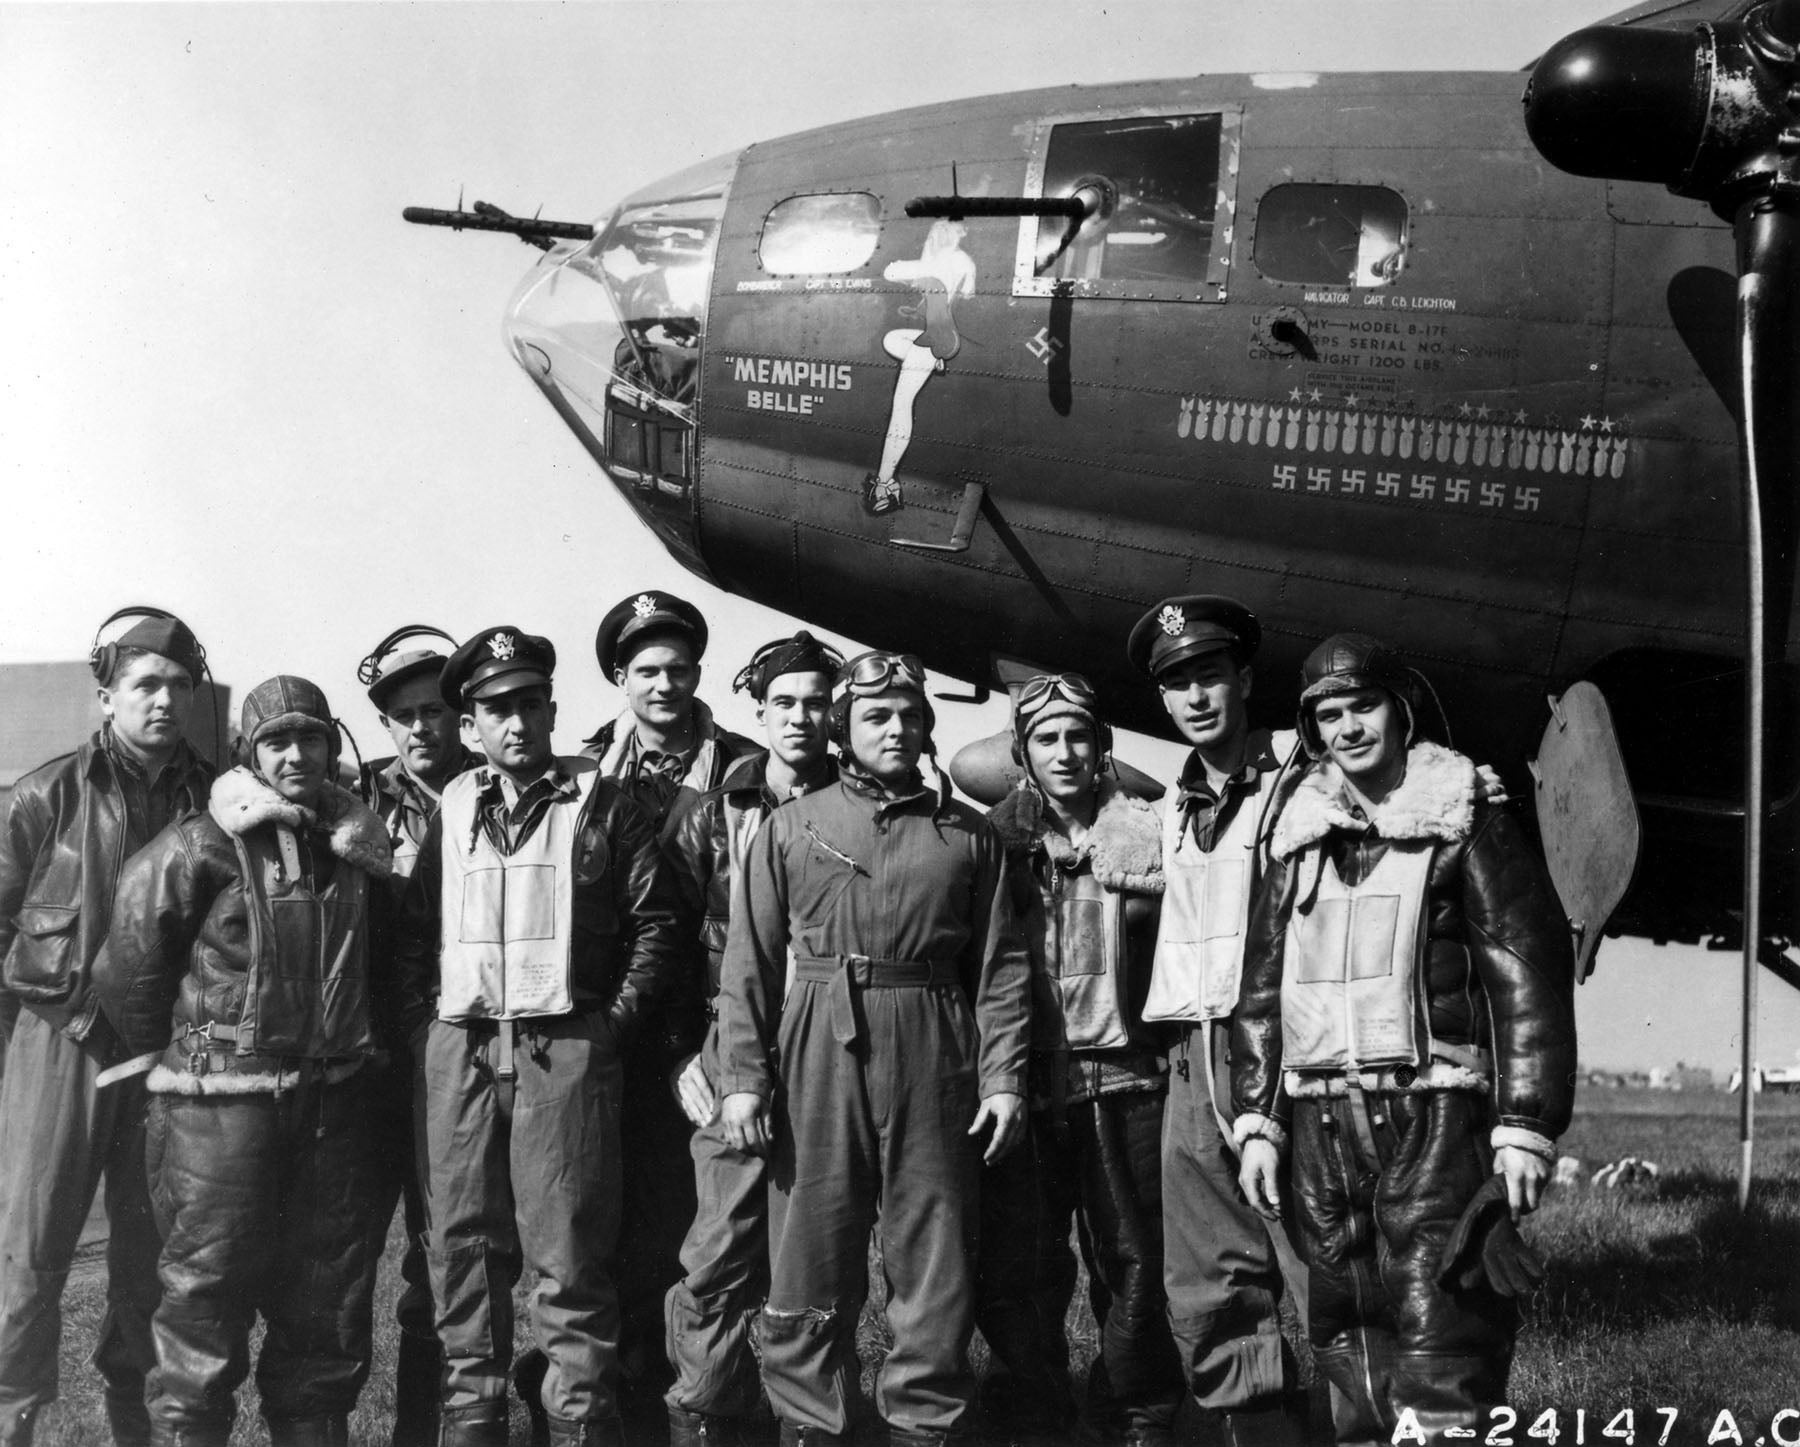 The Memphis Belle and other iconic US Air Force aircraft, and stories of the missions they were involved in, will be focus of ASU Polytechnic campus lecture